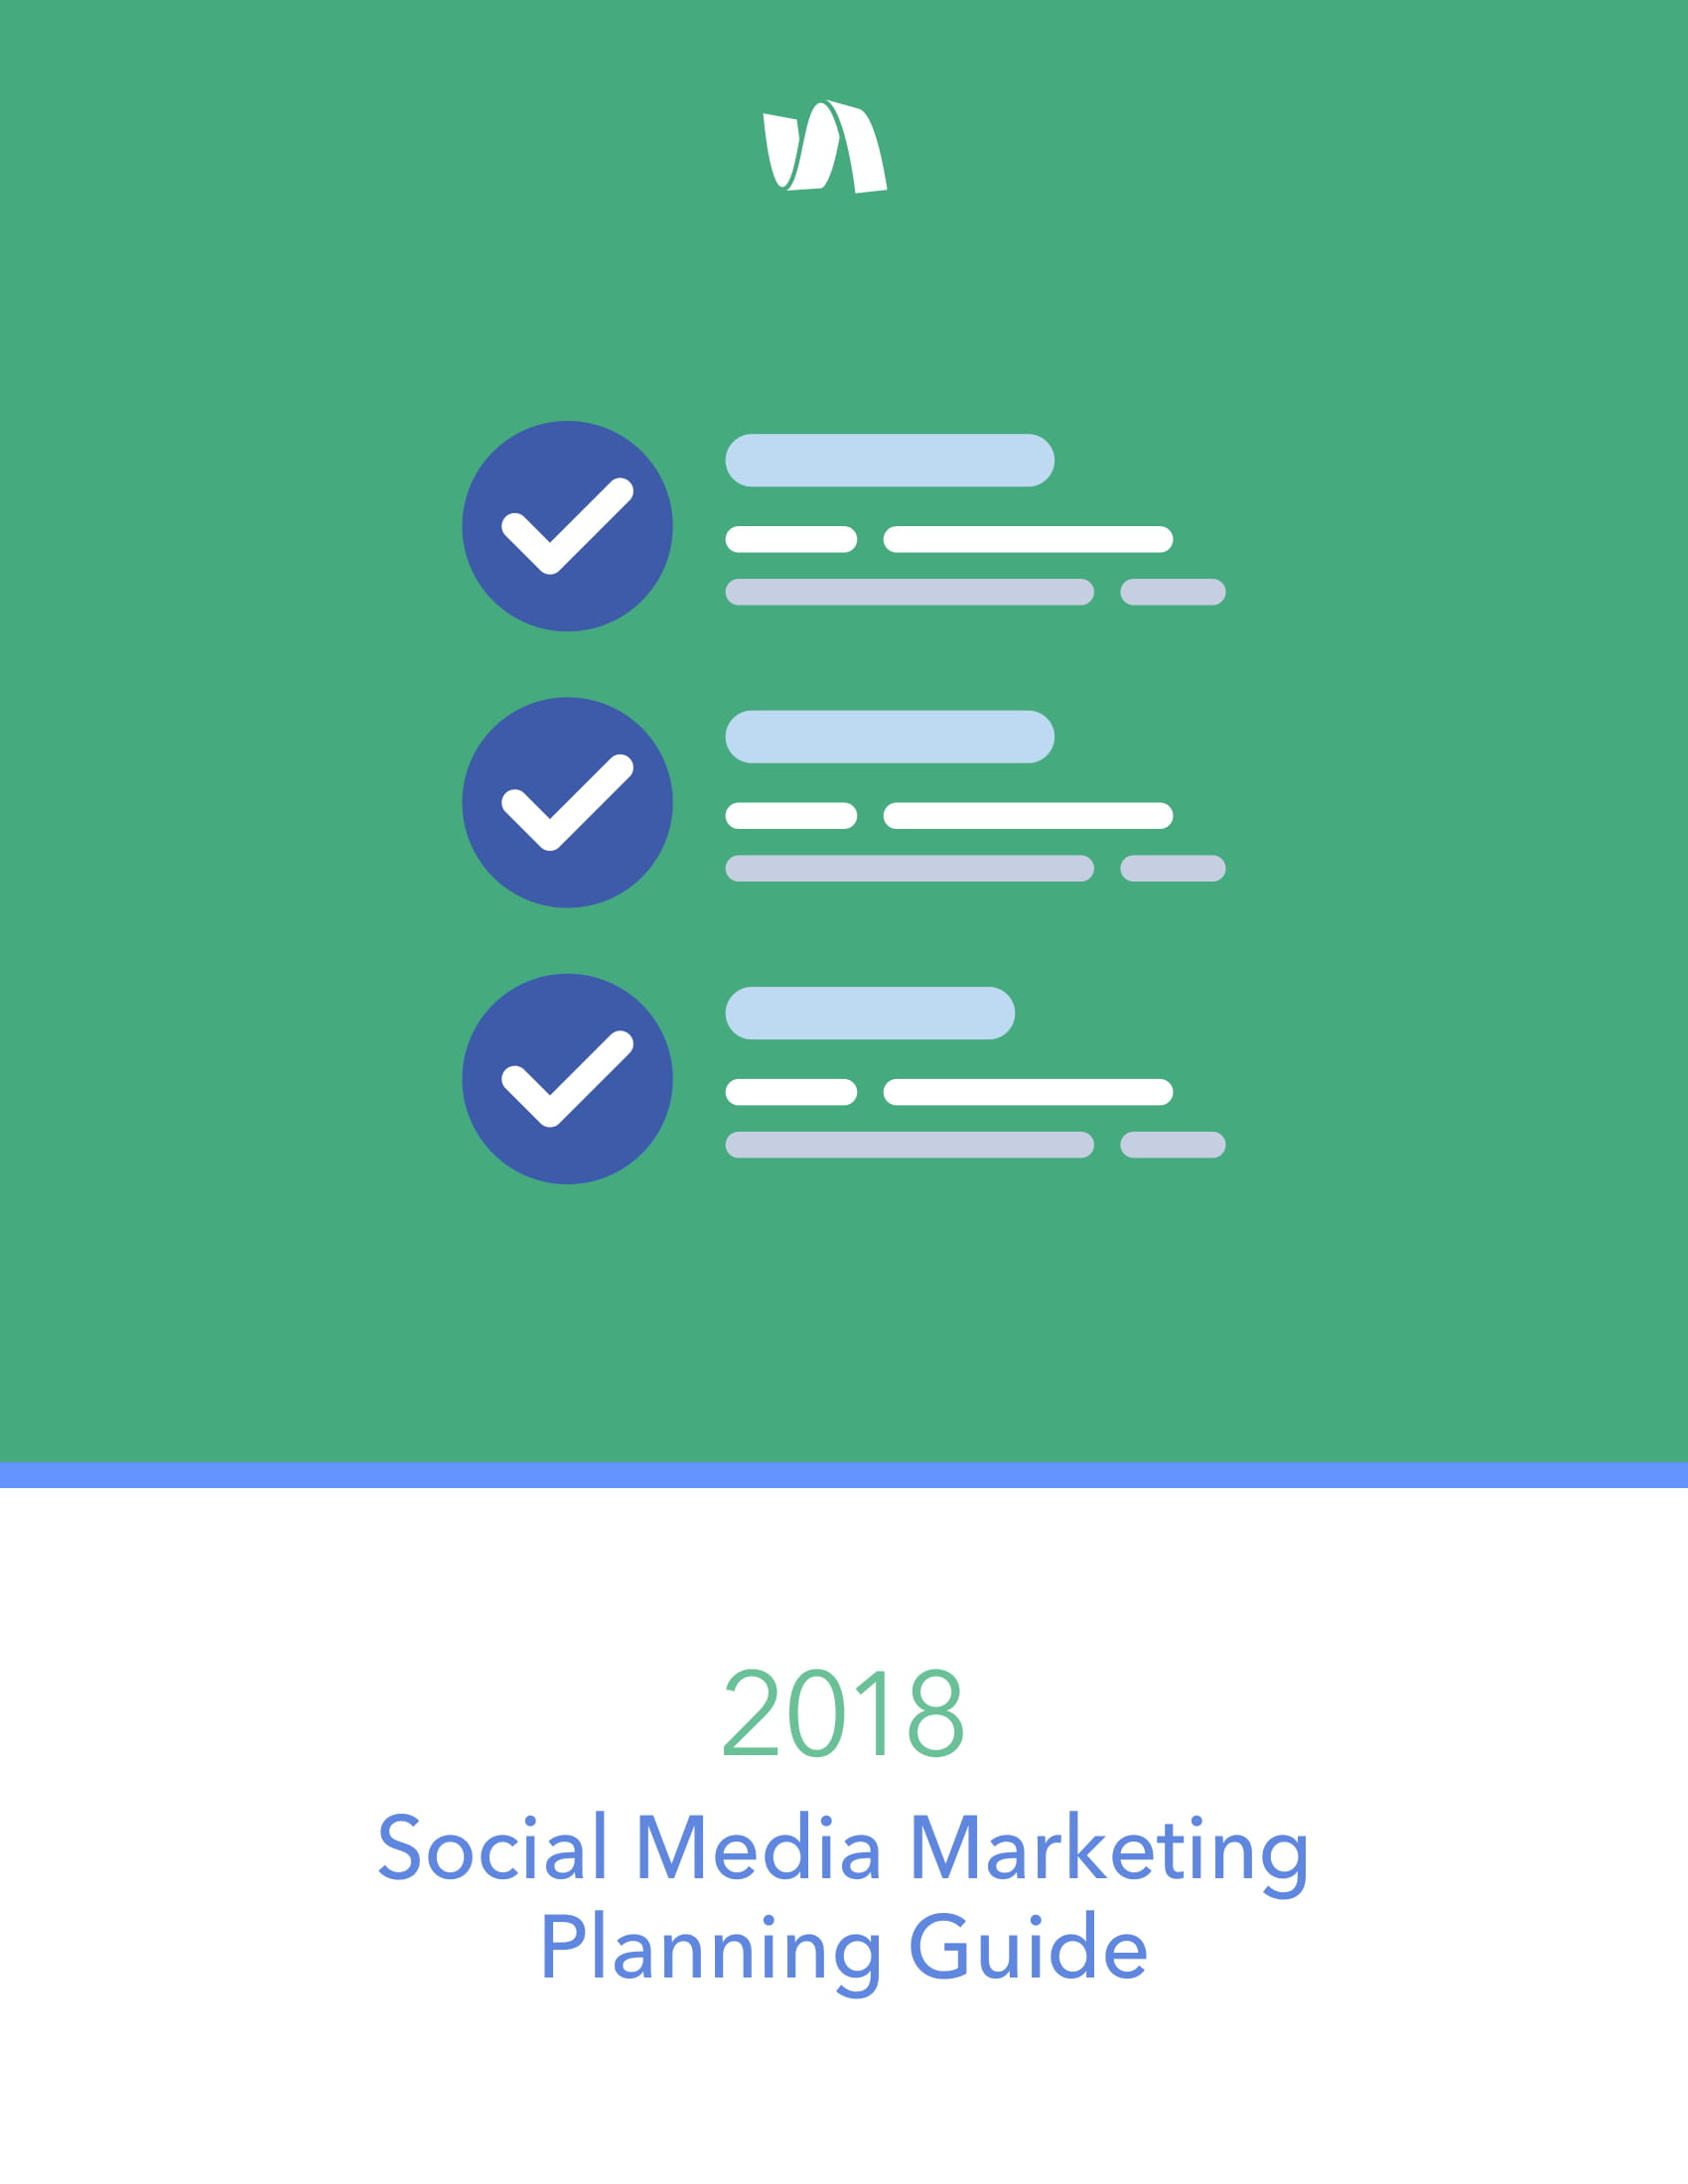 social media marketing planning guide for your organization example 01